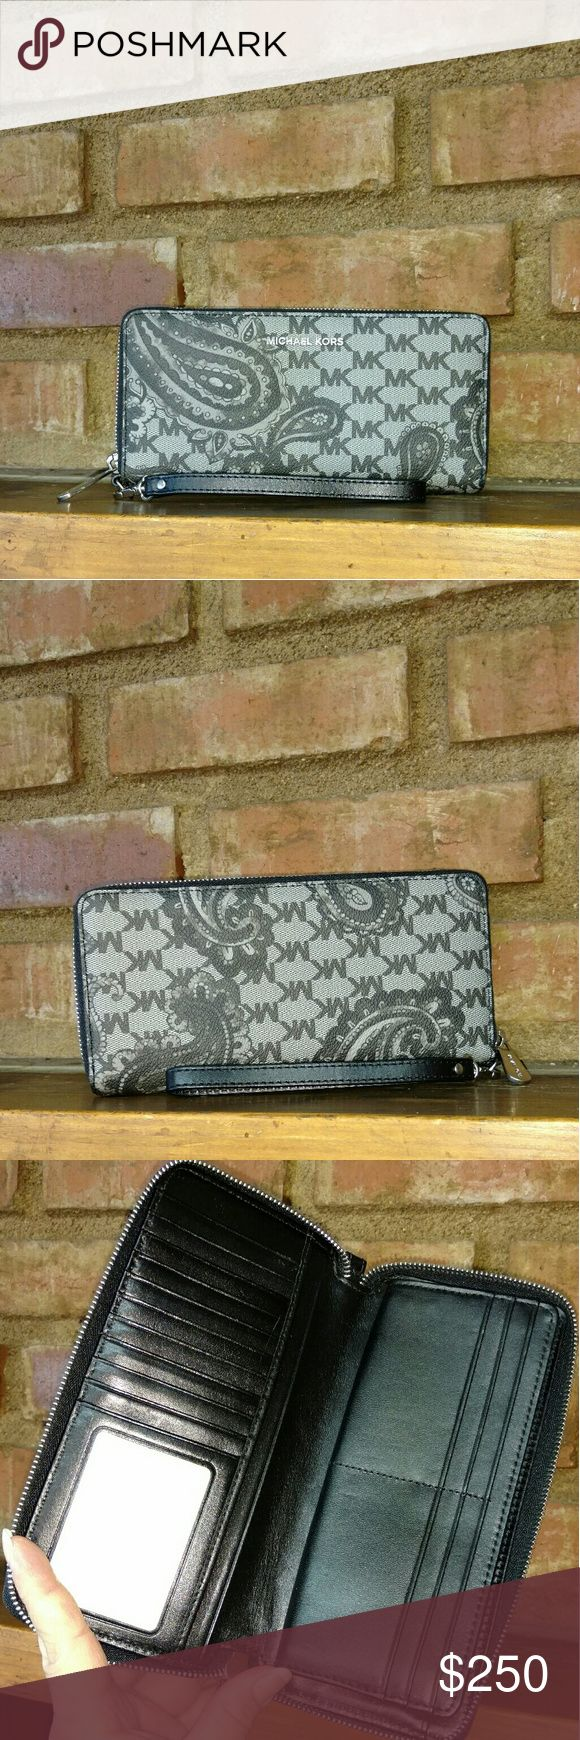 Paisley Travel Continental Wallet Michael Kors Studio Heritage Collection Paisley Travel Continental Wallet MICHAEL Michael Kors Bags Wallets